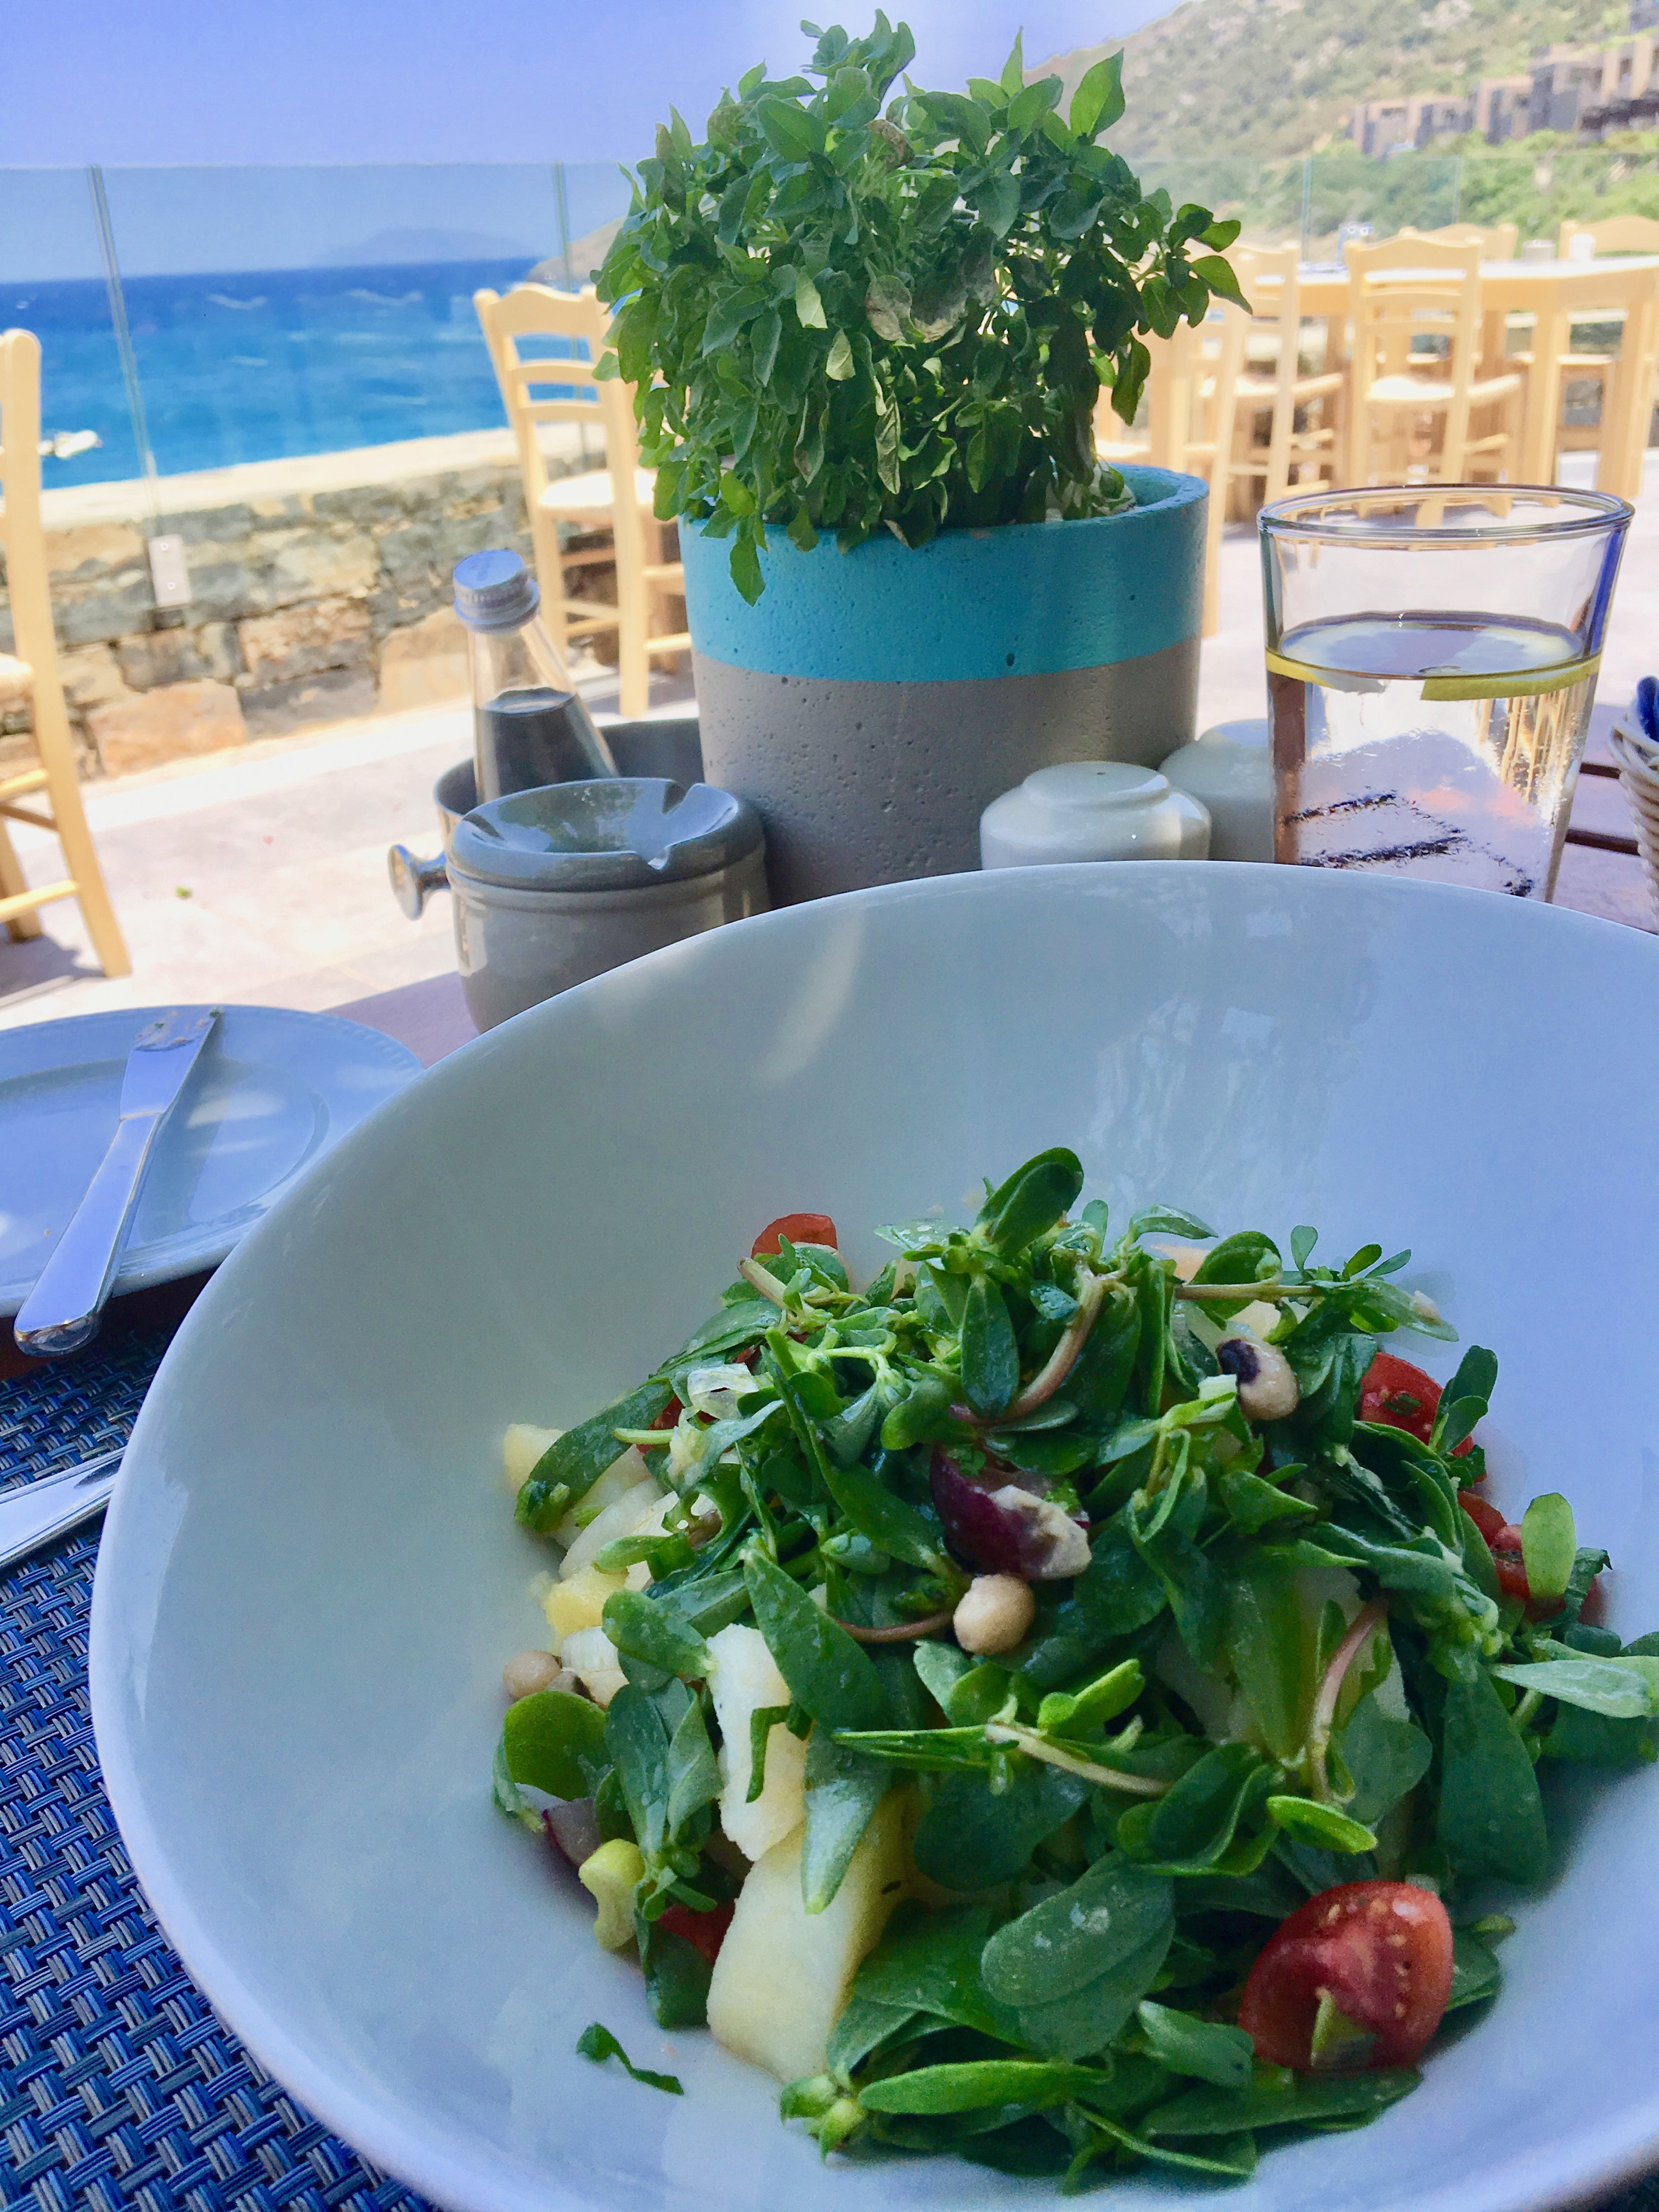 Daios Cove luxury resort and villas Crete, Greece, TAVERNA, Portulaca salad